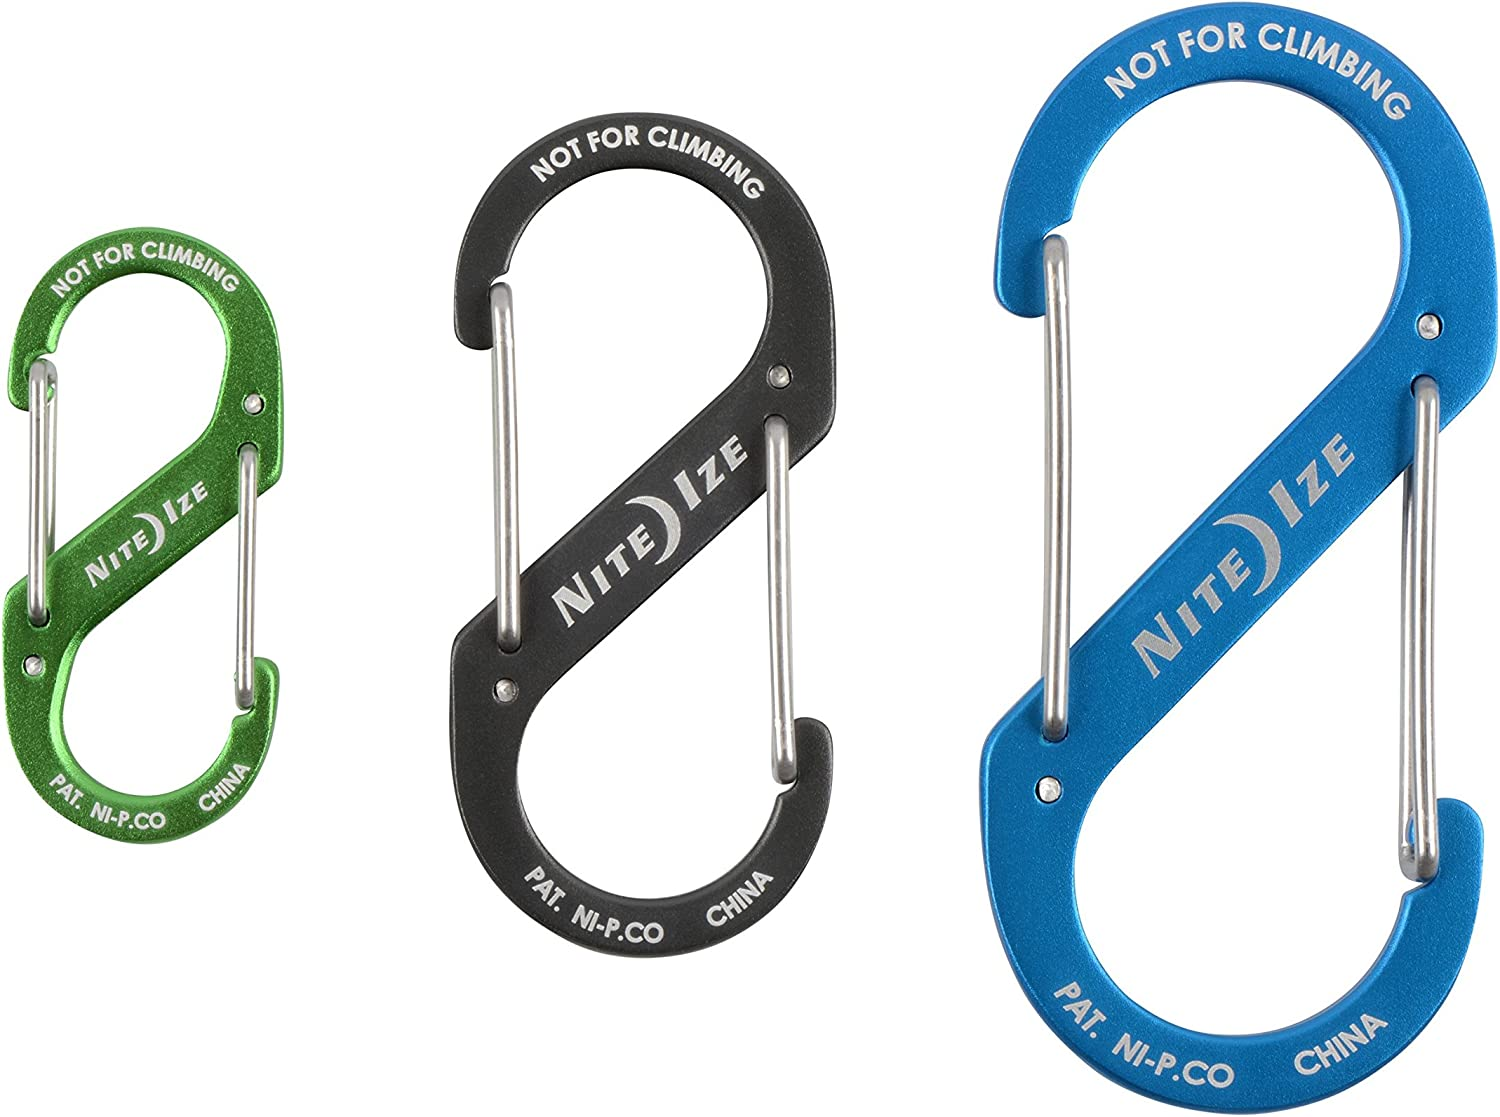 Assorted 3-Pack Black Nite Ize S-Biner Dual Carabiners Stainless-Steel 3 Sizes 2 4